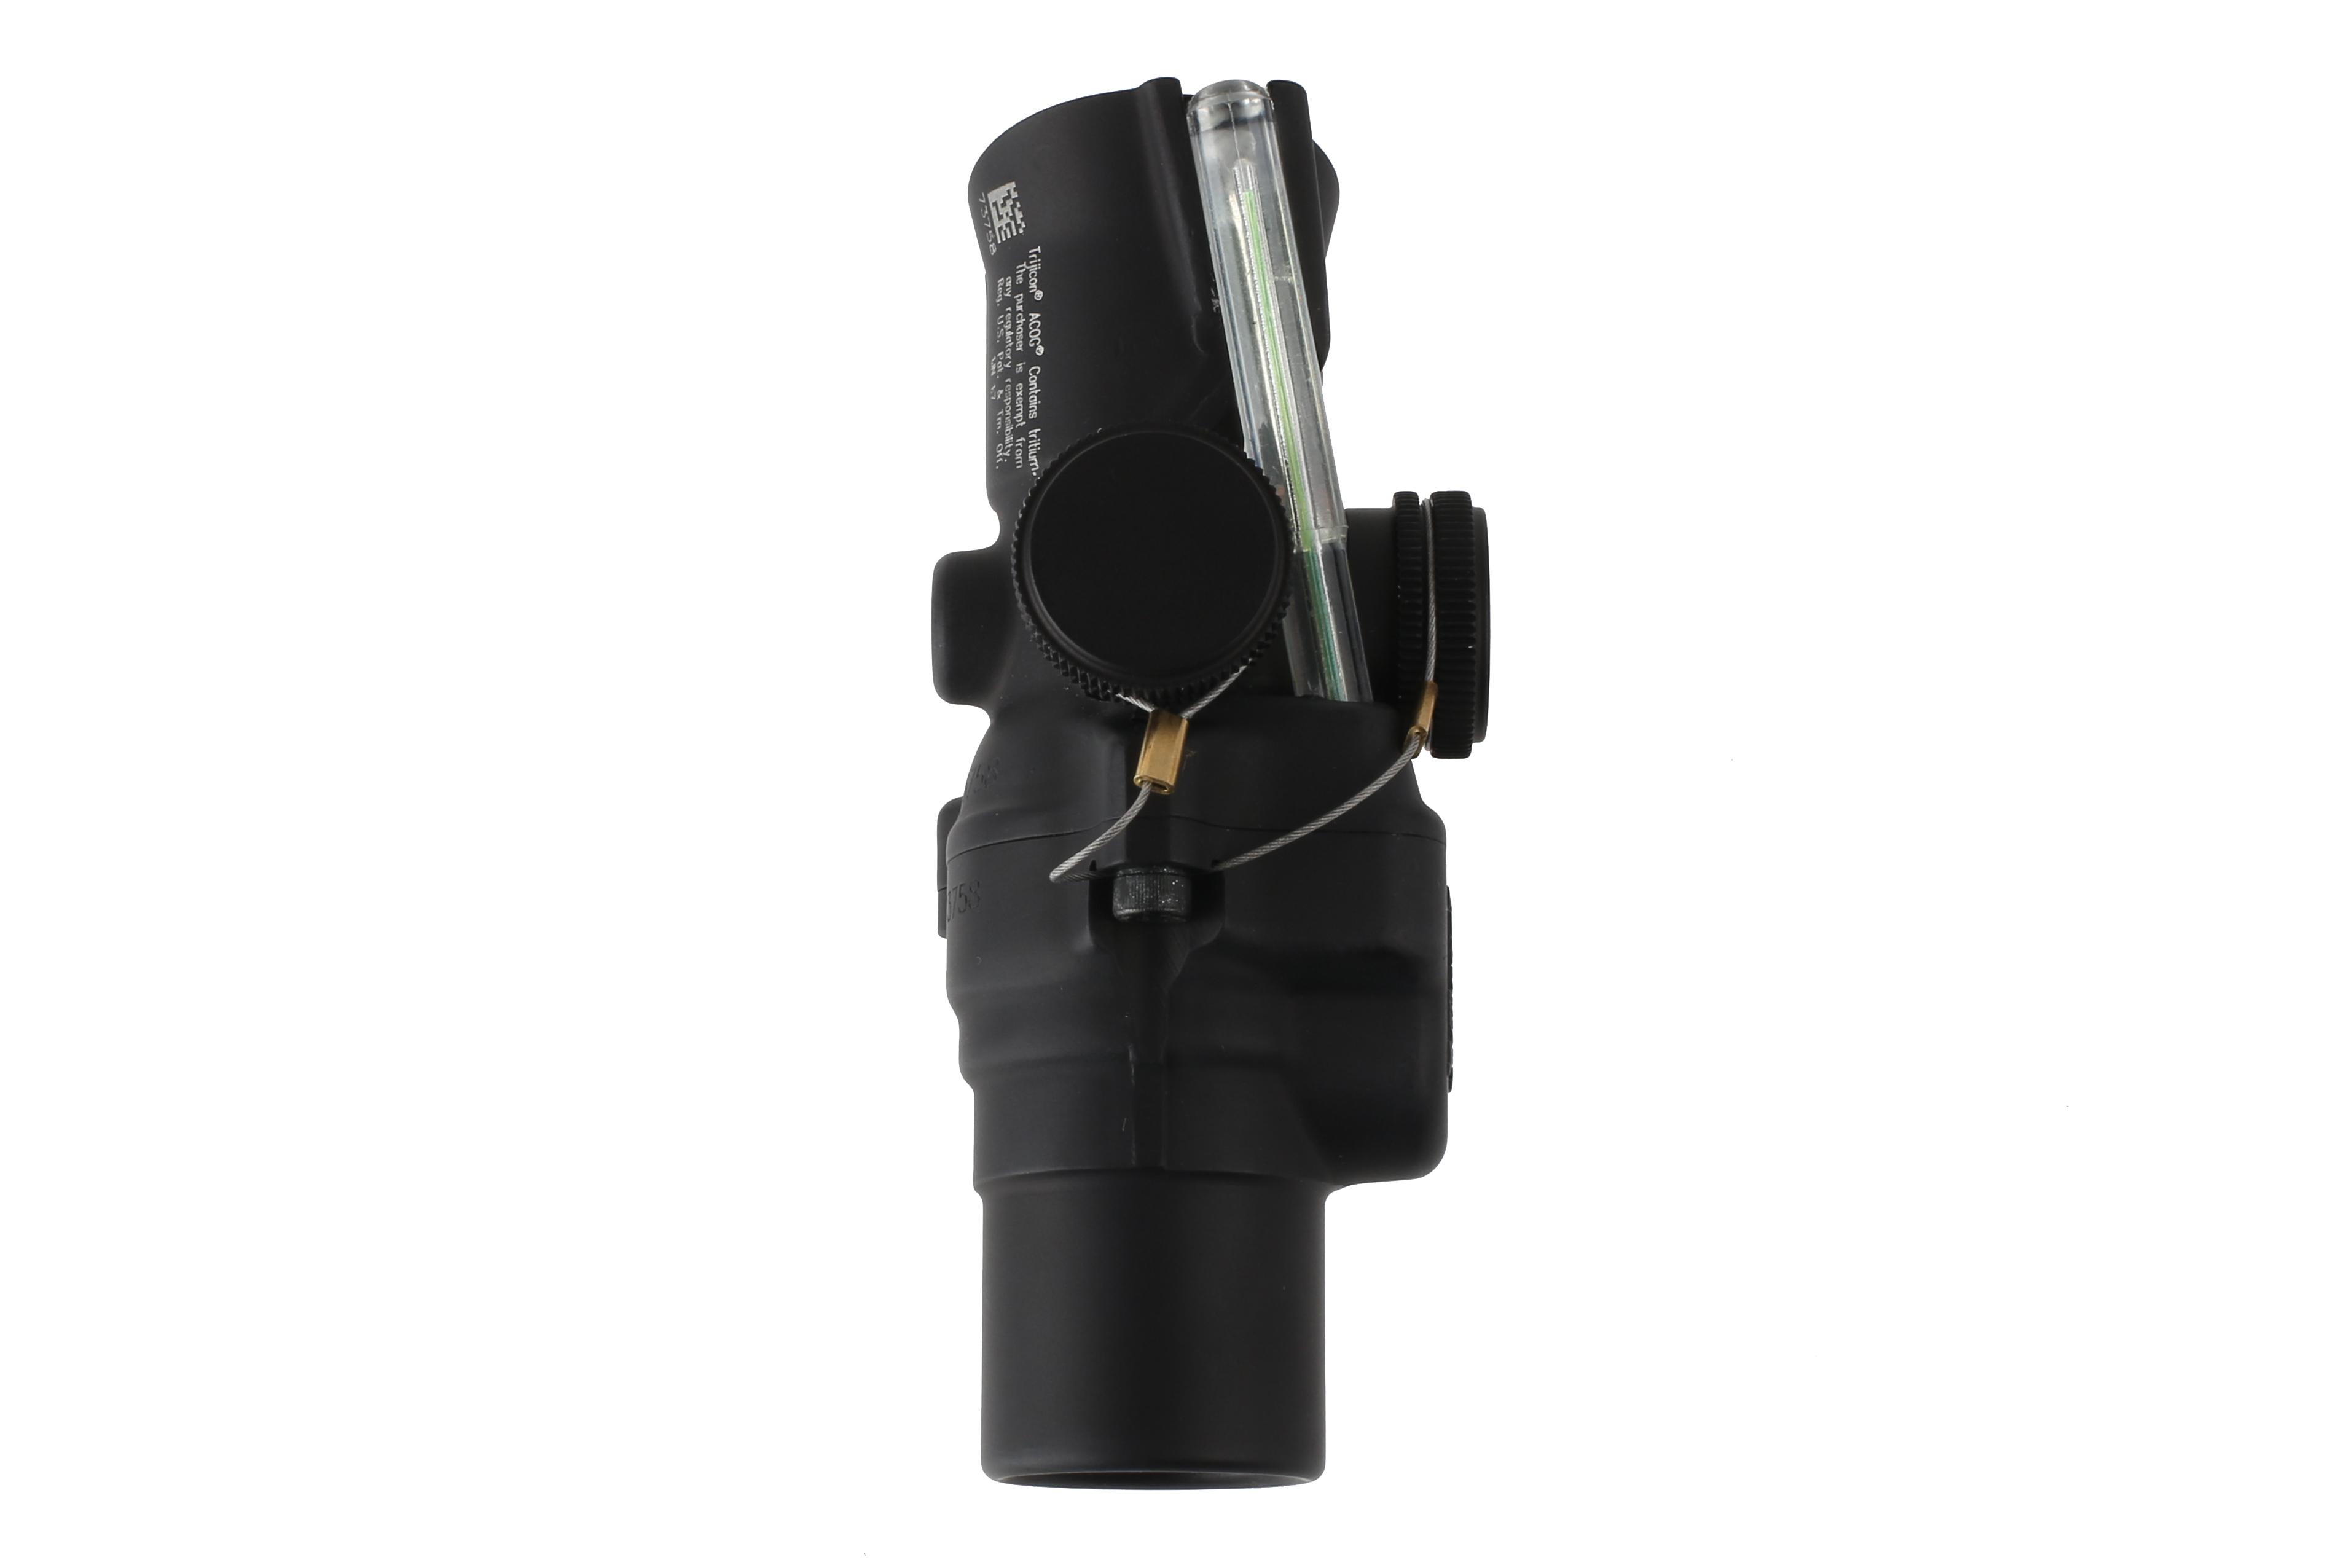 Trijicon 1.5x compact ACOG with low base and green illuminated ACSS CQB-M5 reticle is just 4 inches long and 5.1 oz